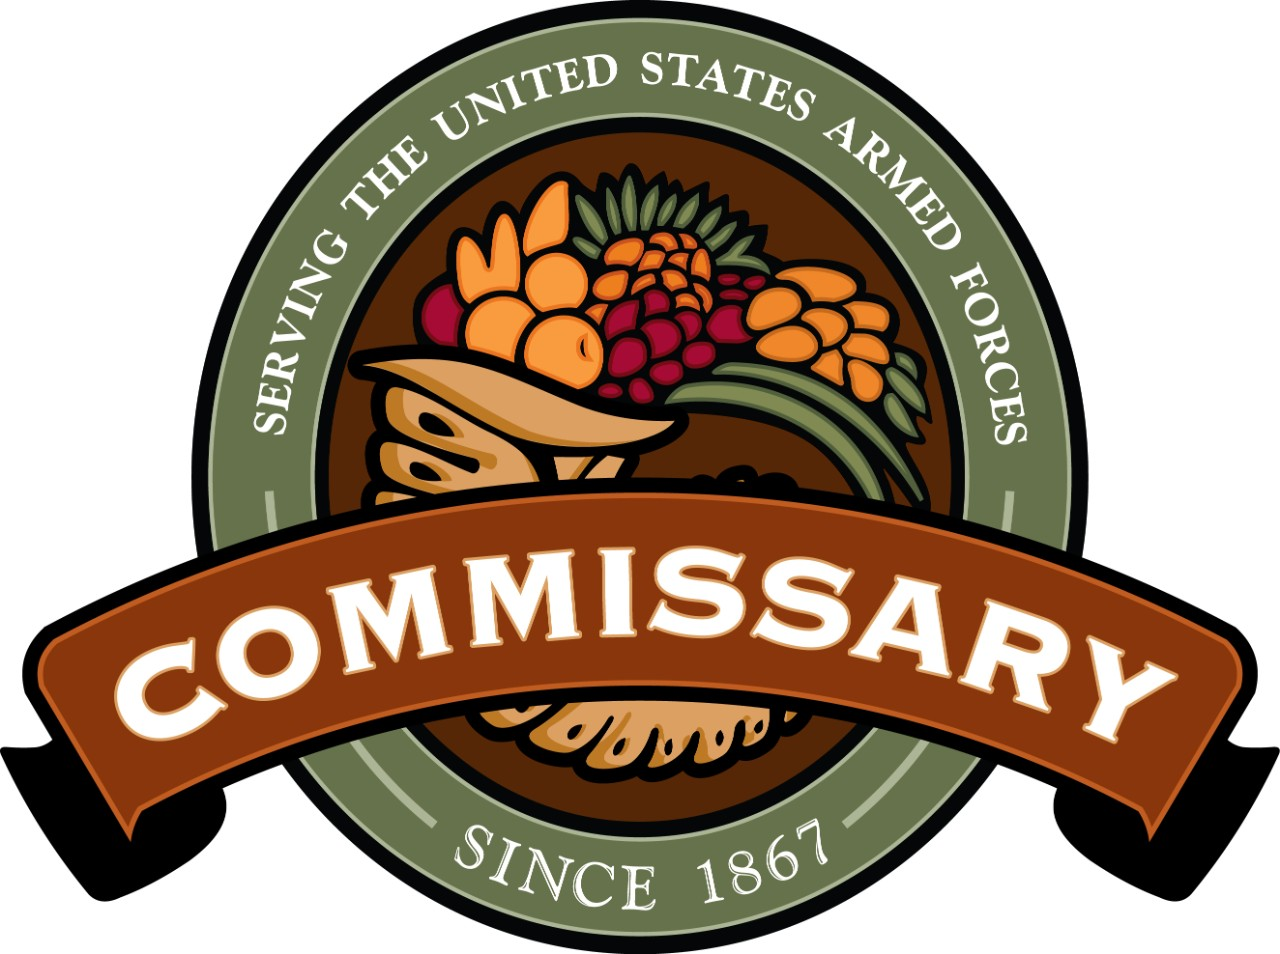 Defense Commissary Agency Seal